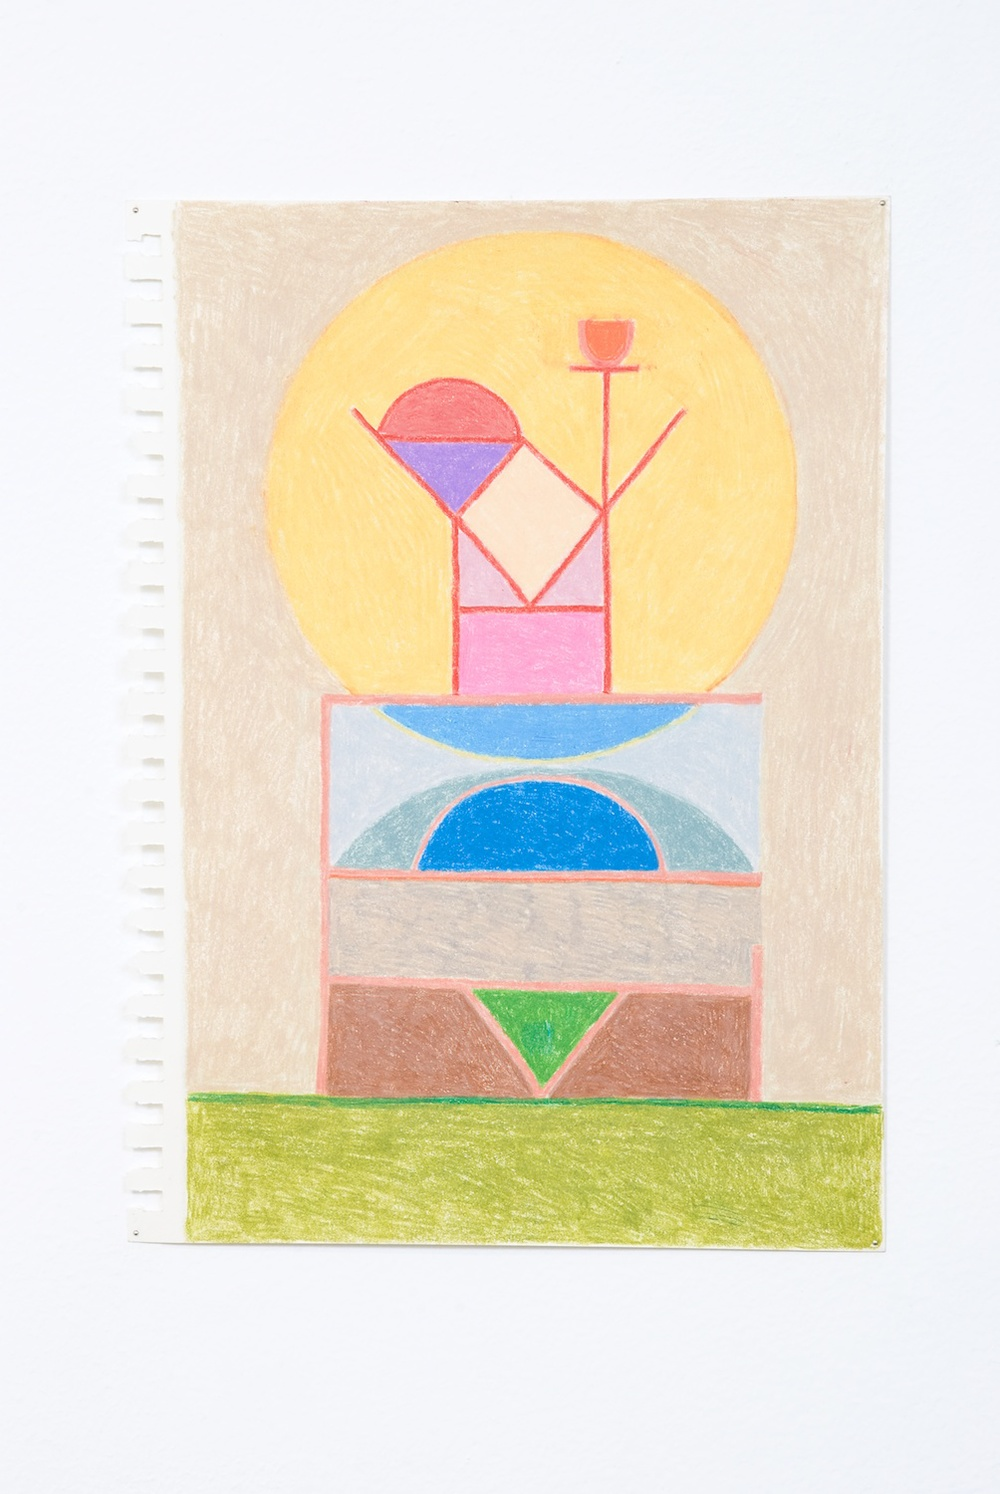 "Elijah Burgher Promise Delivery 2009 Colored pencil on paper 12"" x 8 EB013"